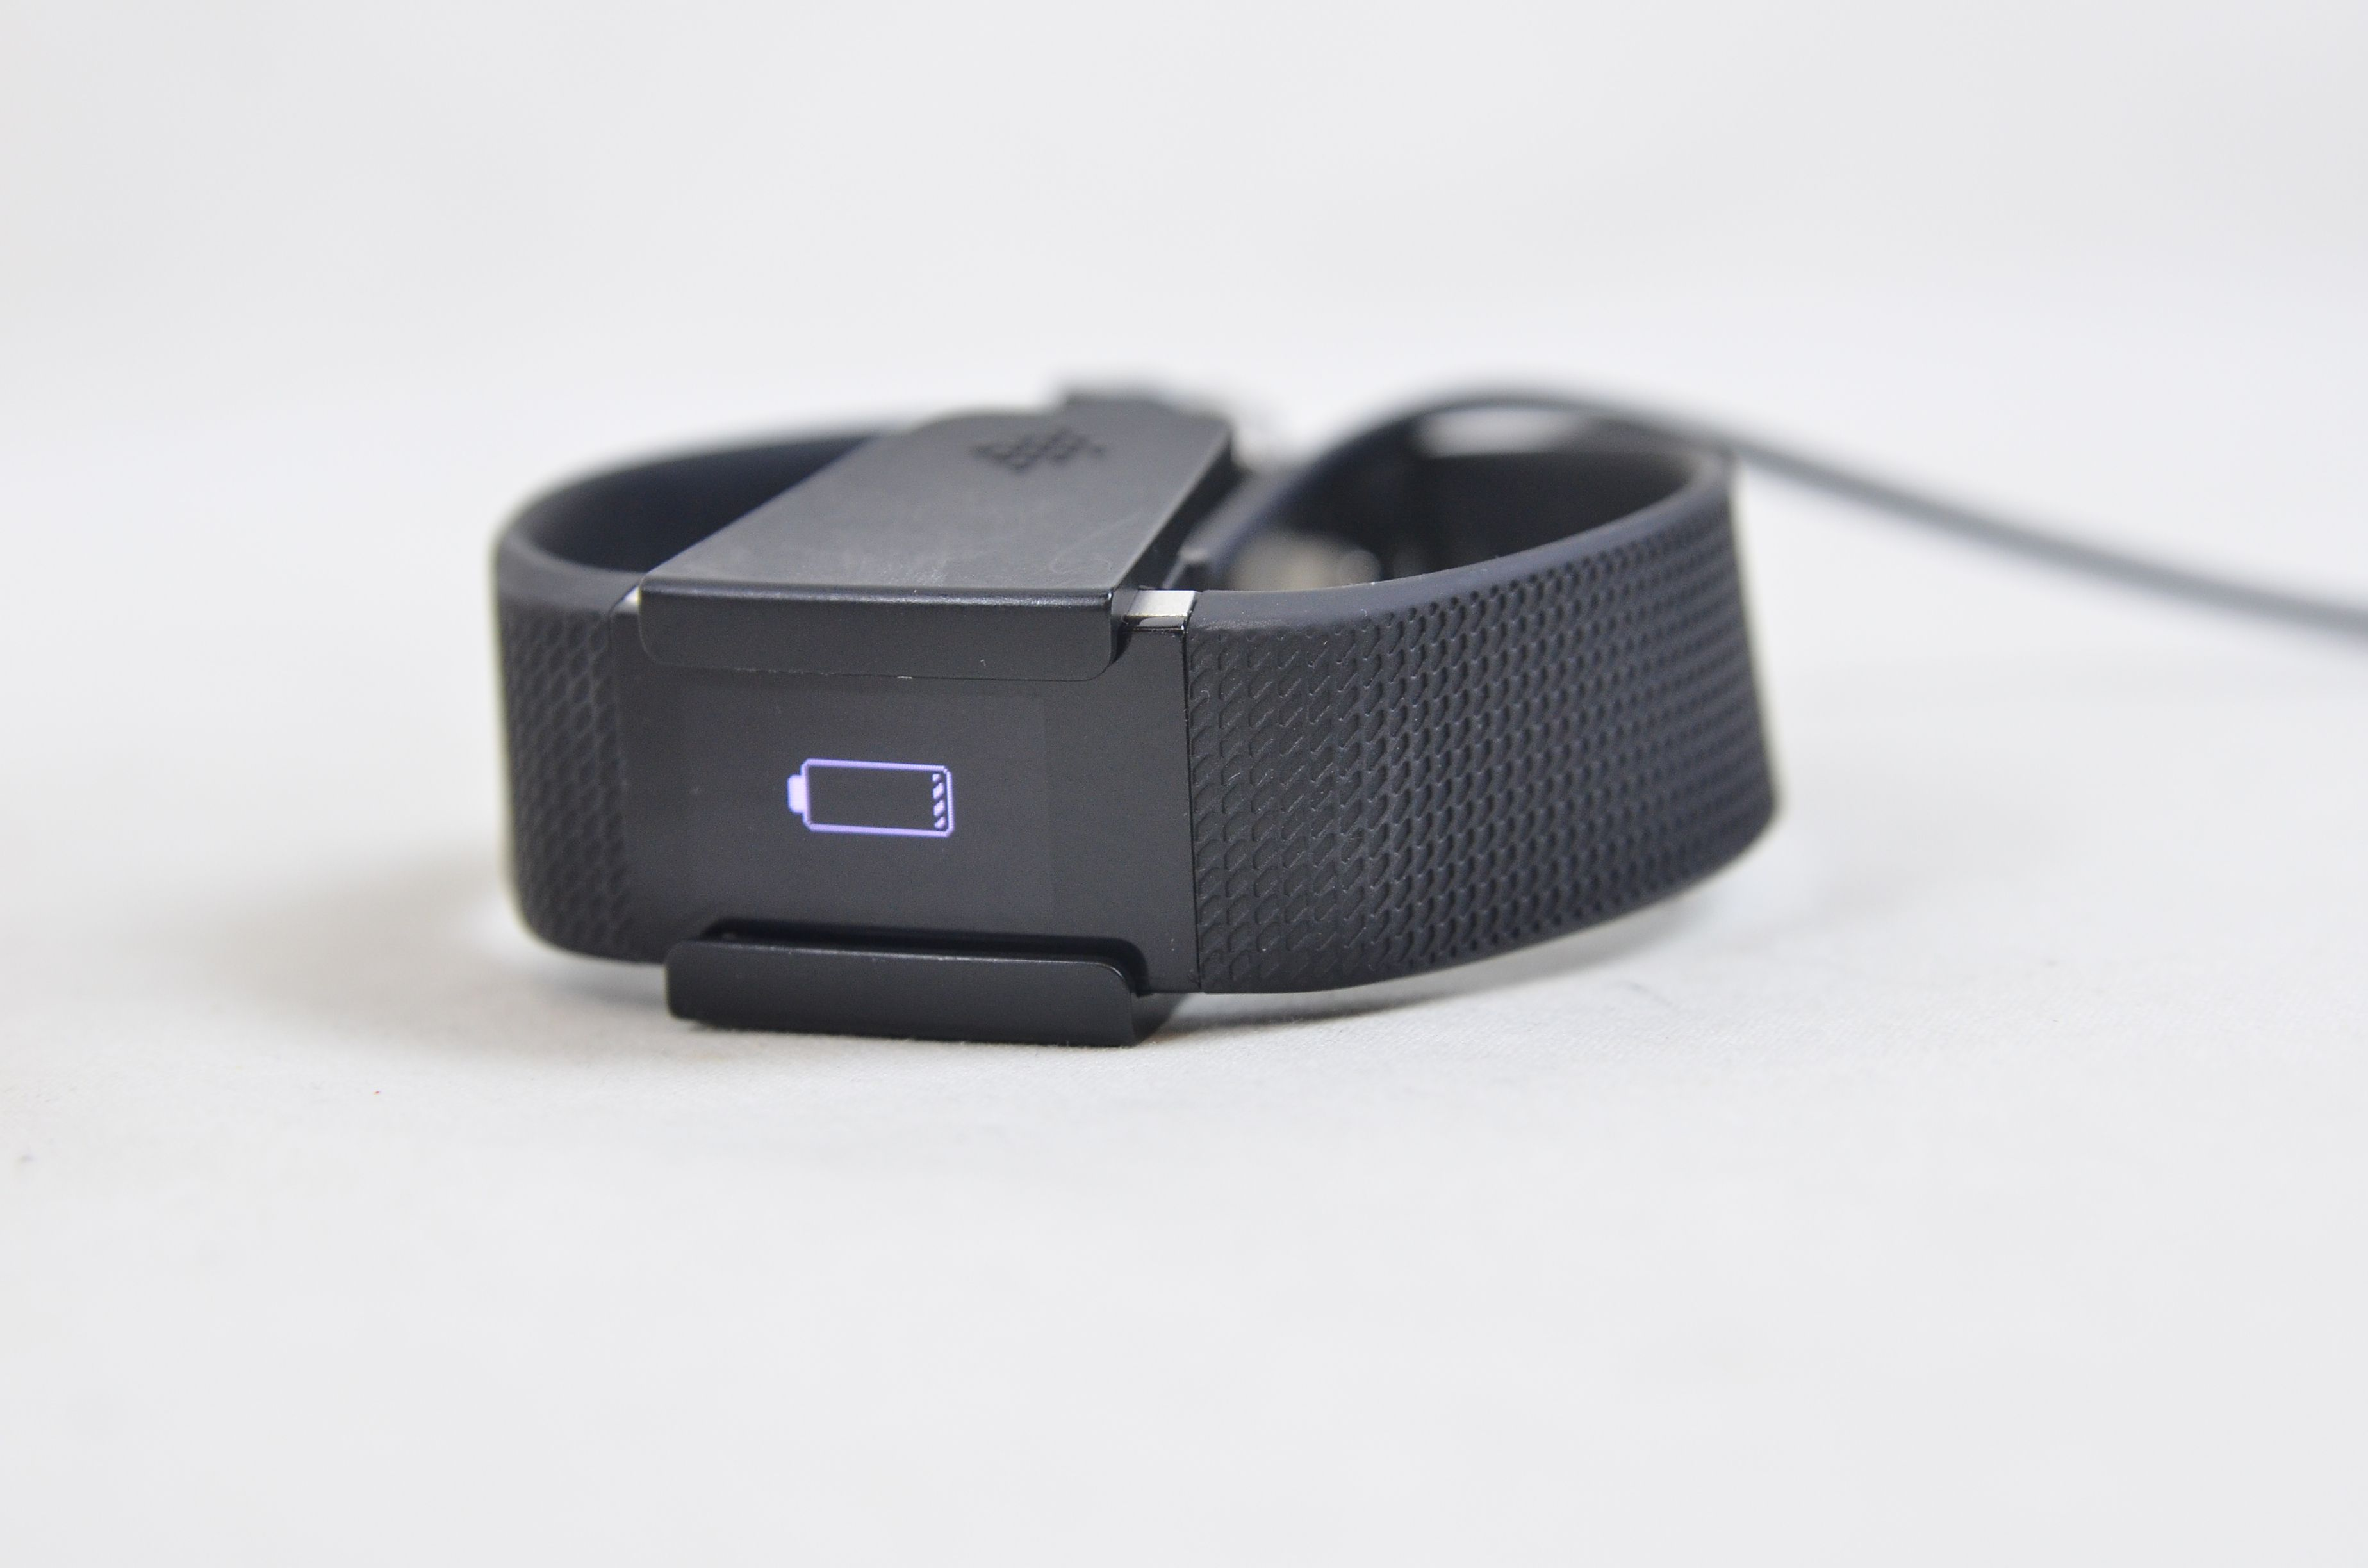 Fitbit Charge 2 Heart Rate Monitor & Fitness Tracking Wristband